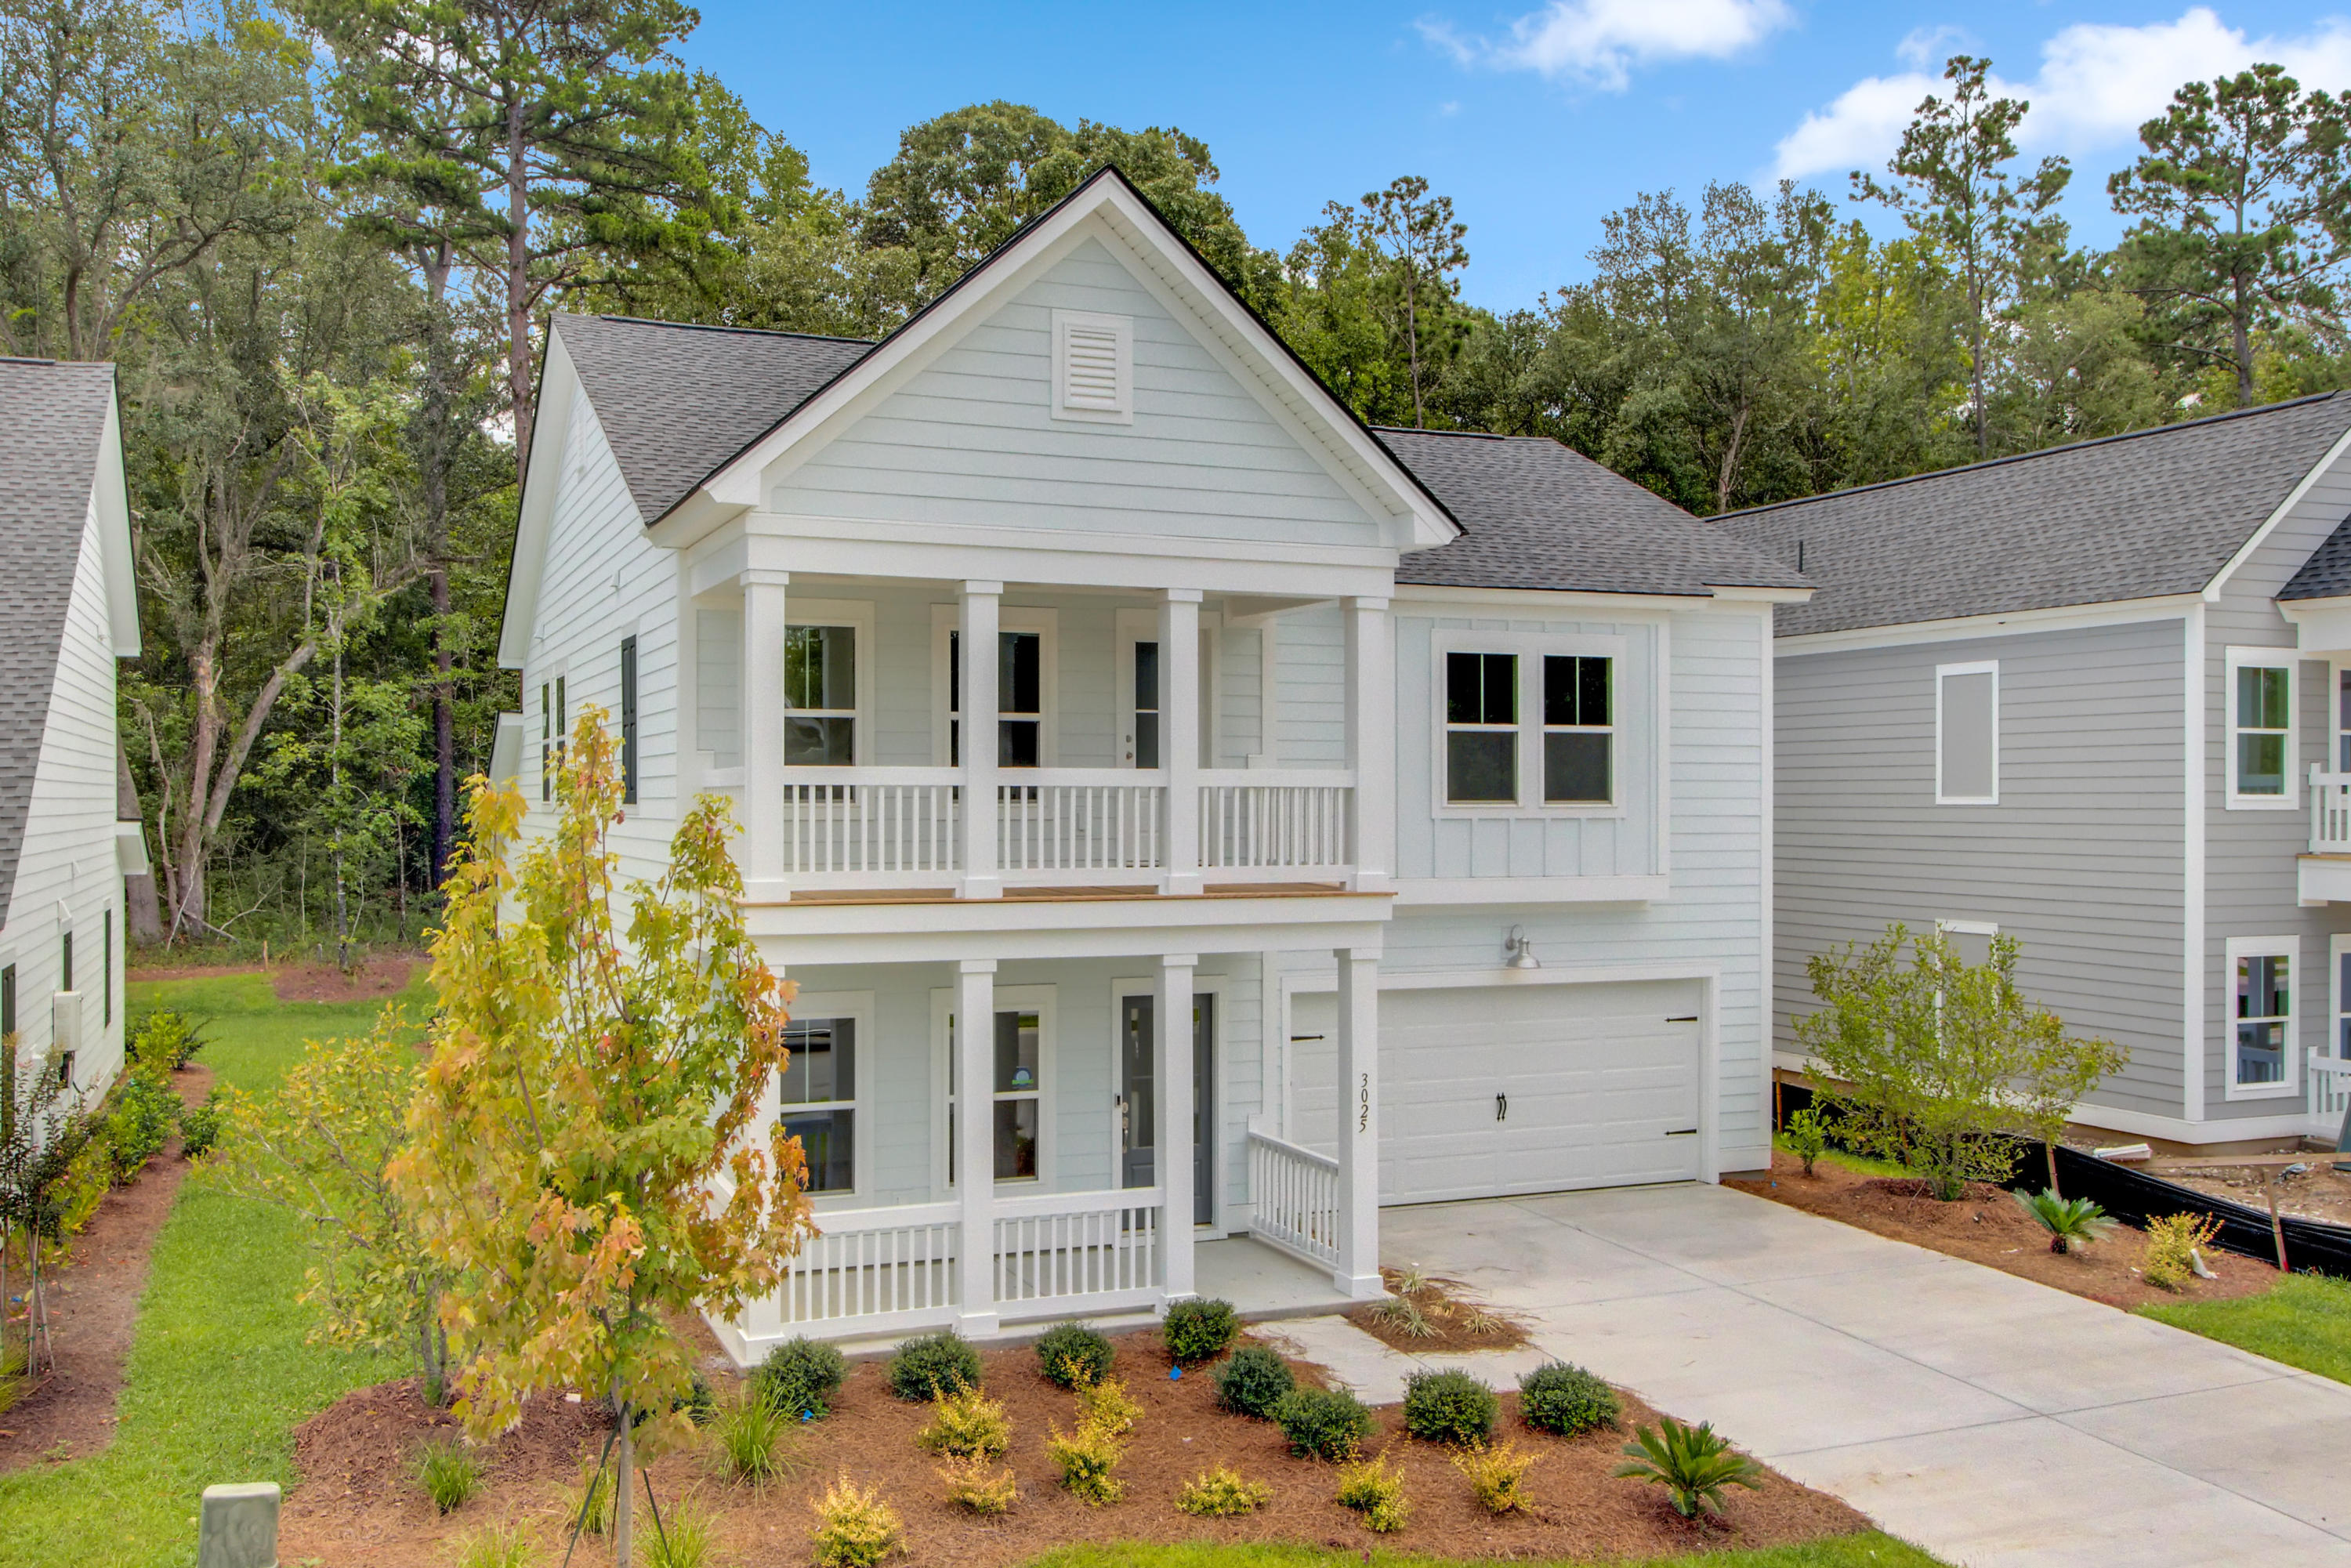 Park West Homes For Sale - 3033 Caspian, Mount Pleasant, SC - 21